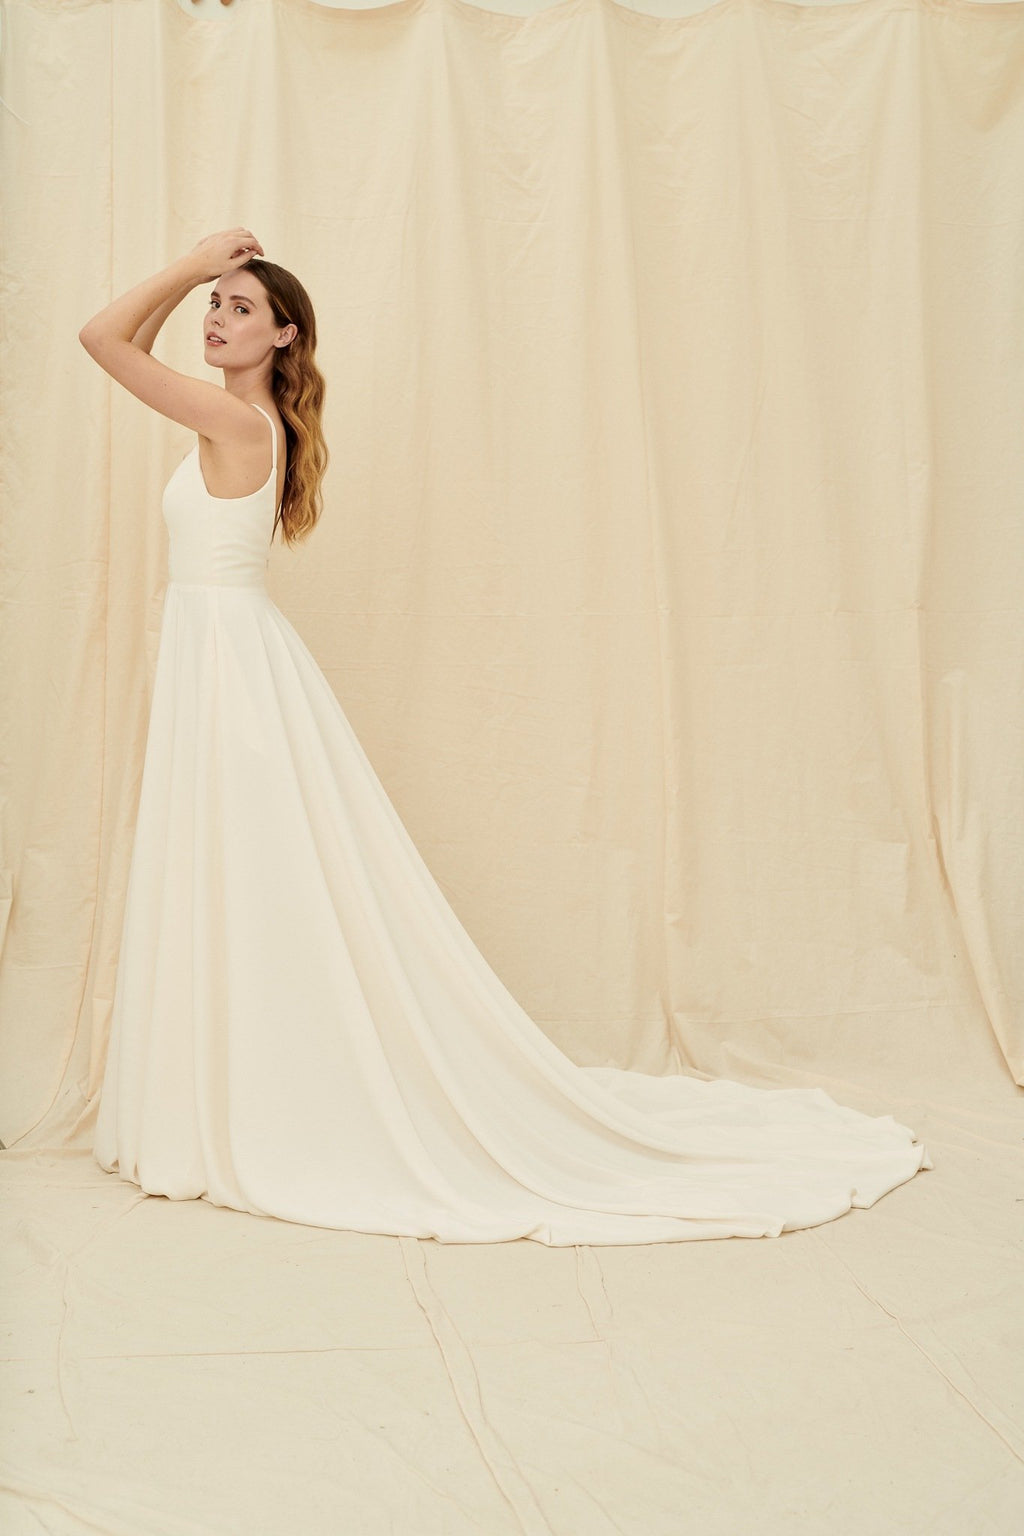 Super low cut crepe wedding dress with spaghetti straps, pockets, and a huge train